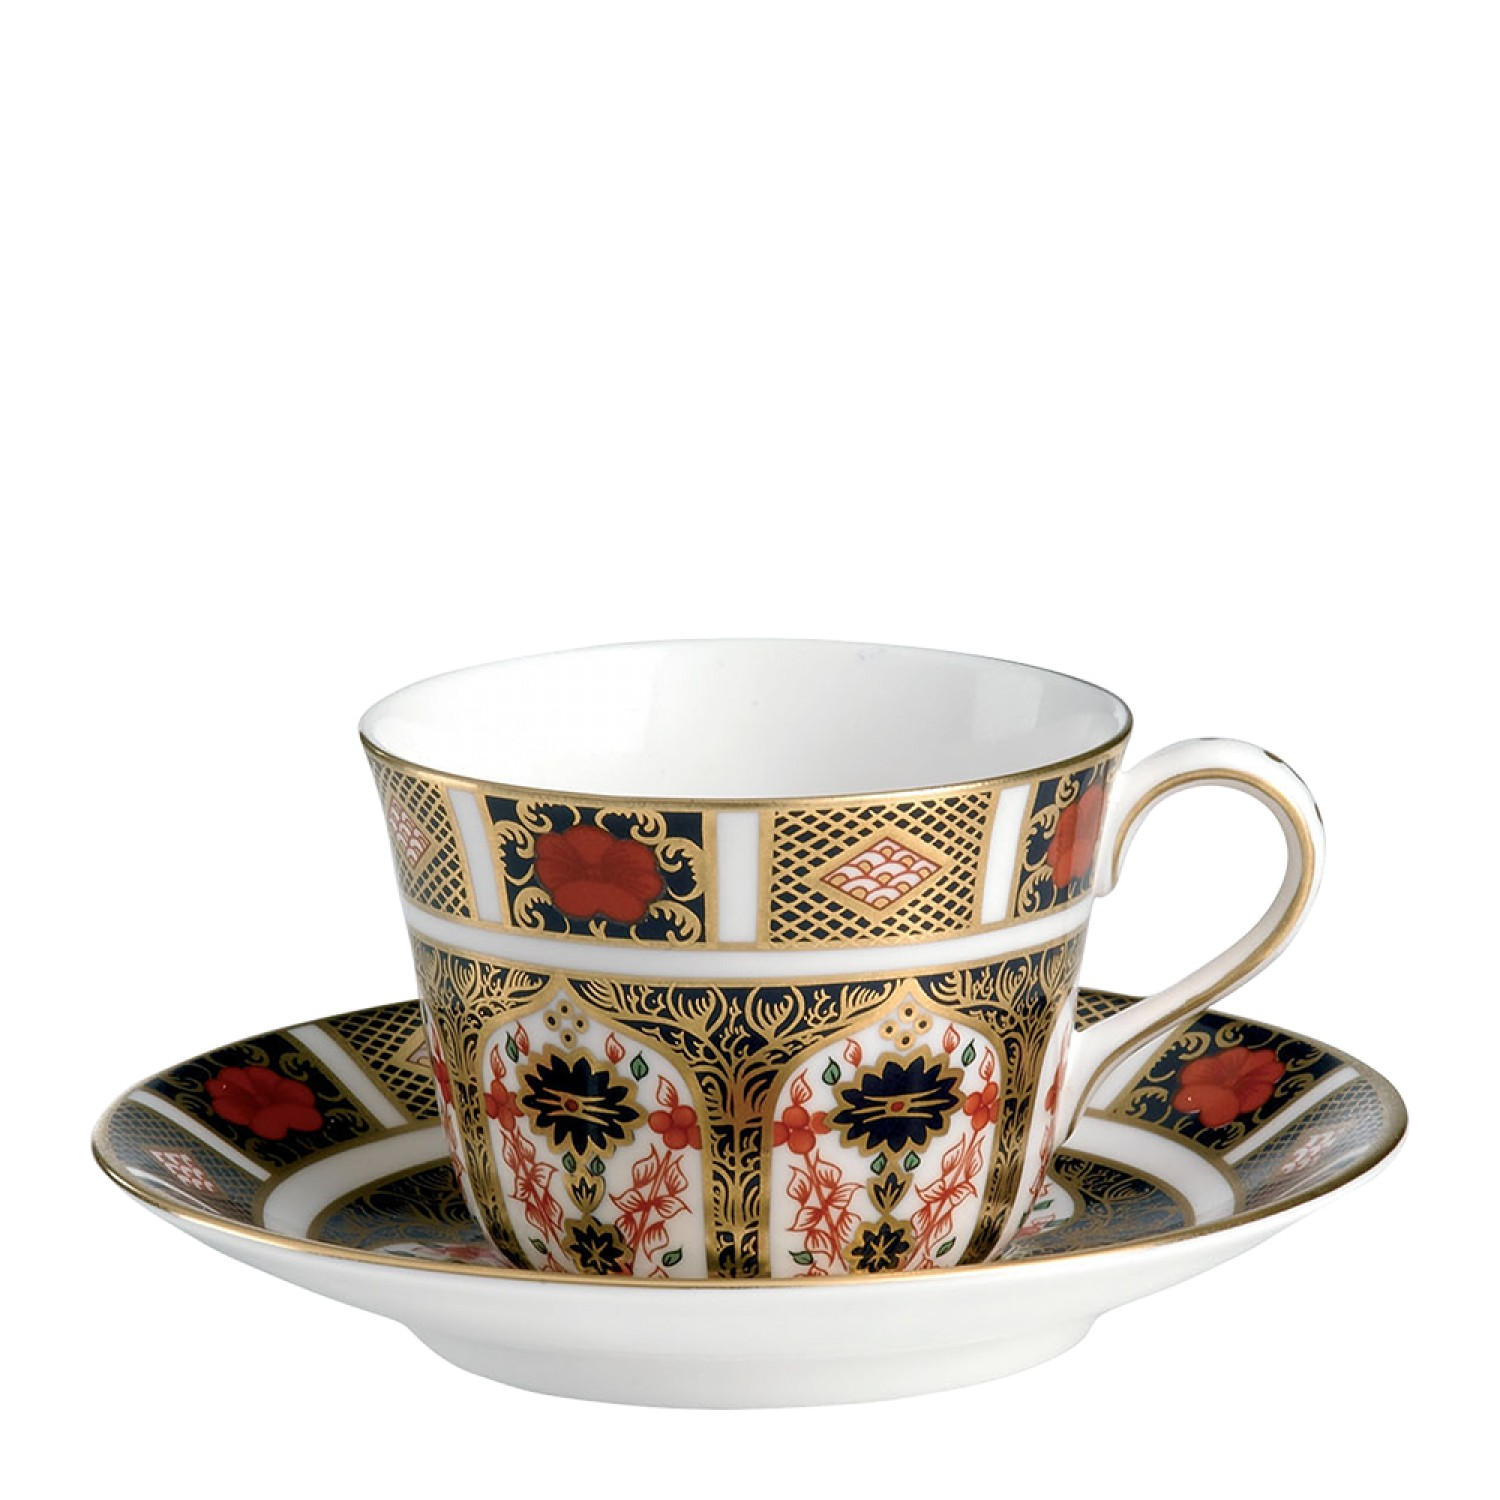 Royal Crown Derby Old Imari 11286149 Cup and Saucer